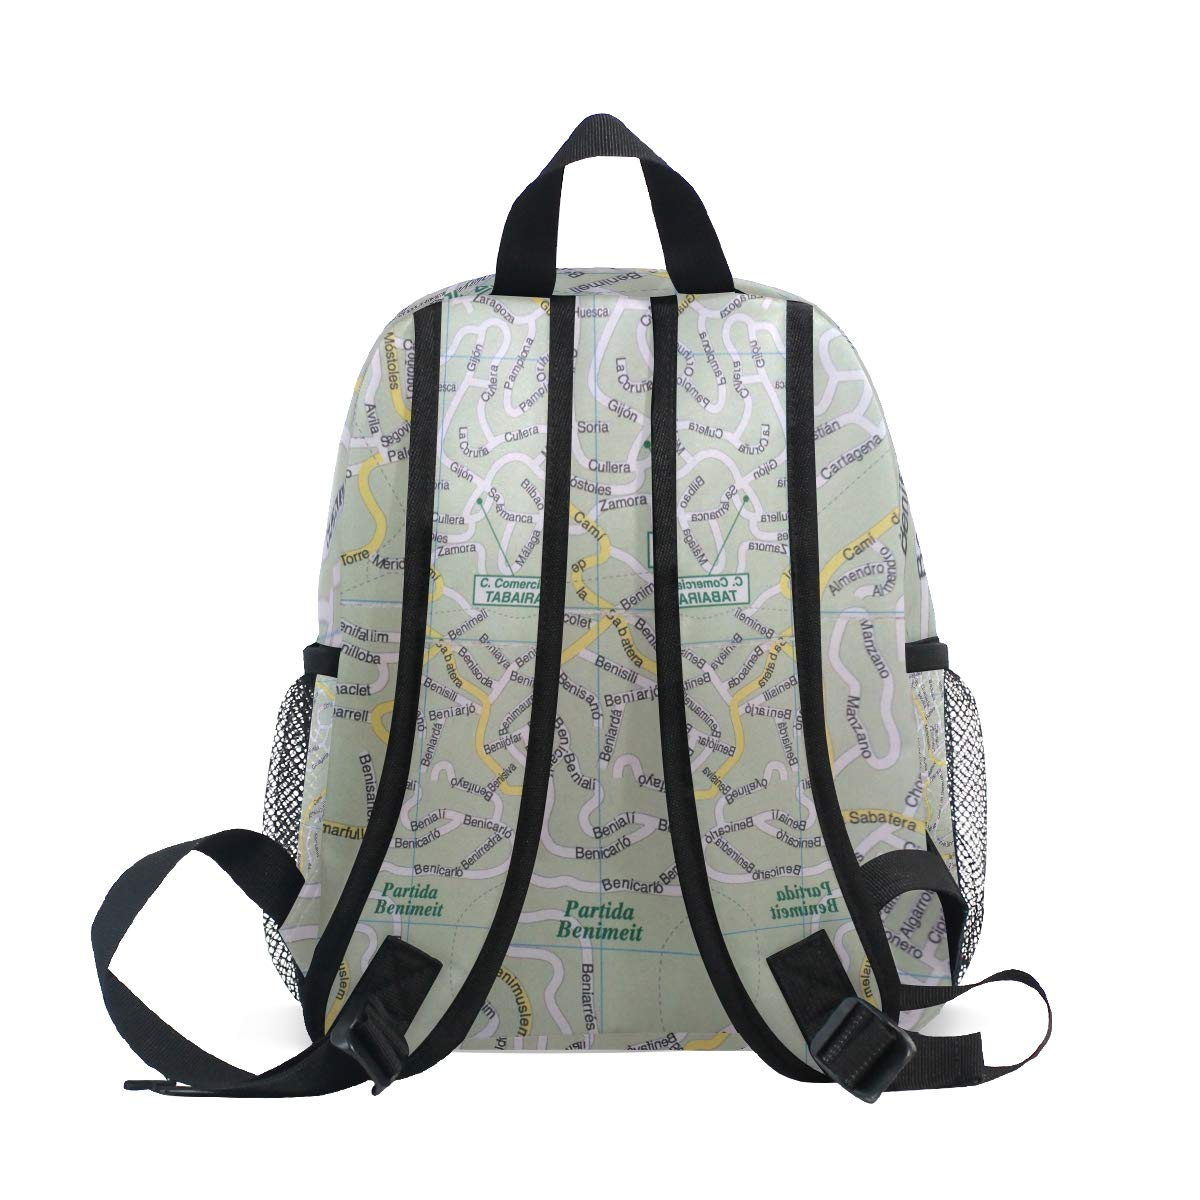 Amazon.com: MONTOJ Map Bookbag Travel Bag Packable School ...